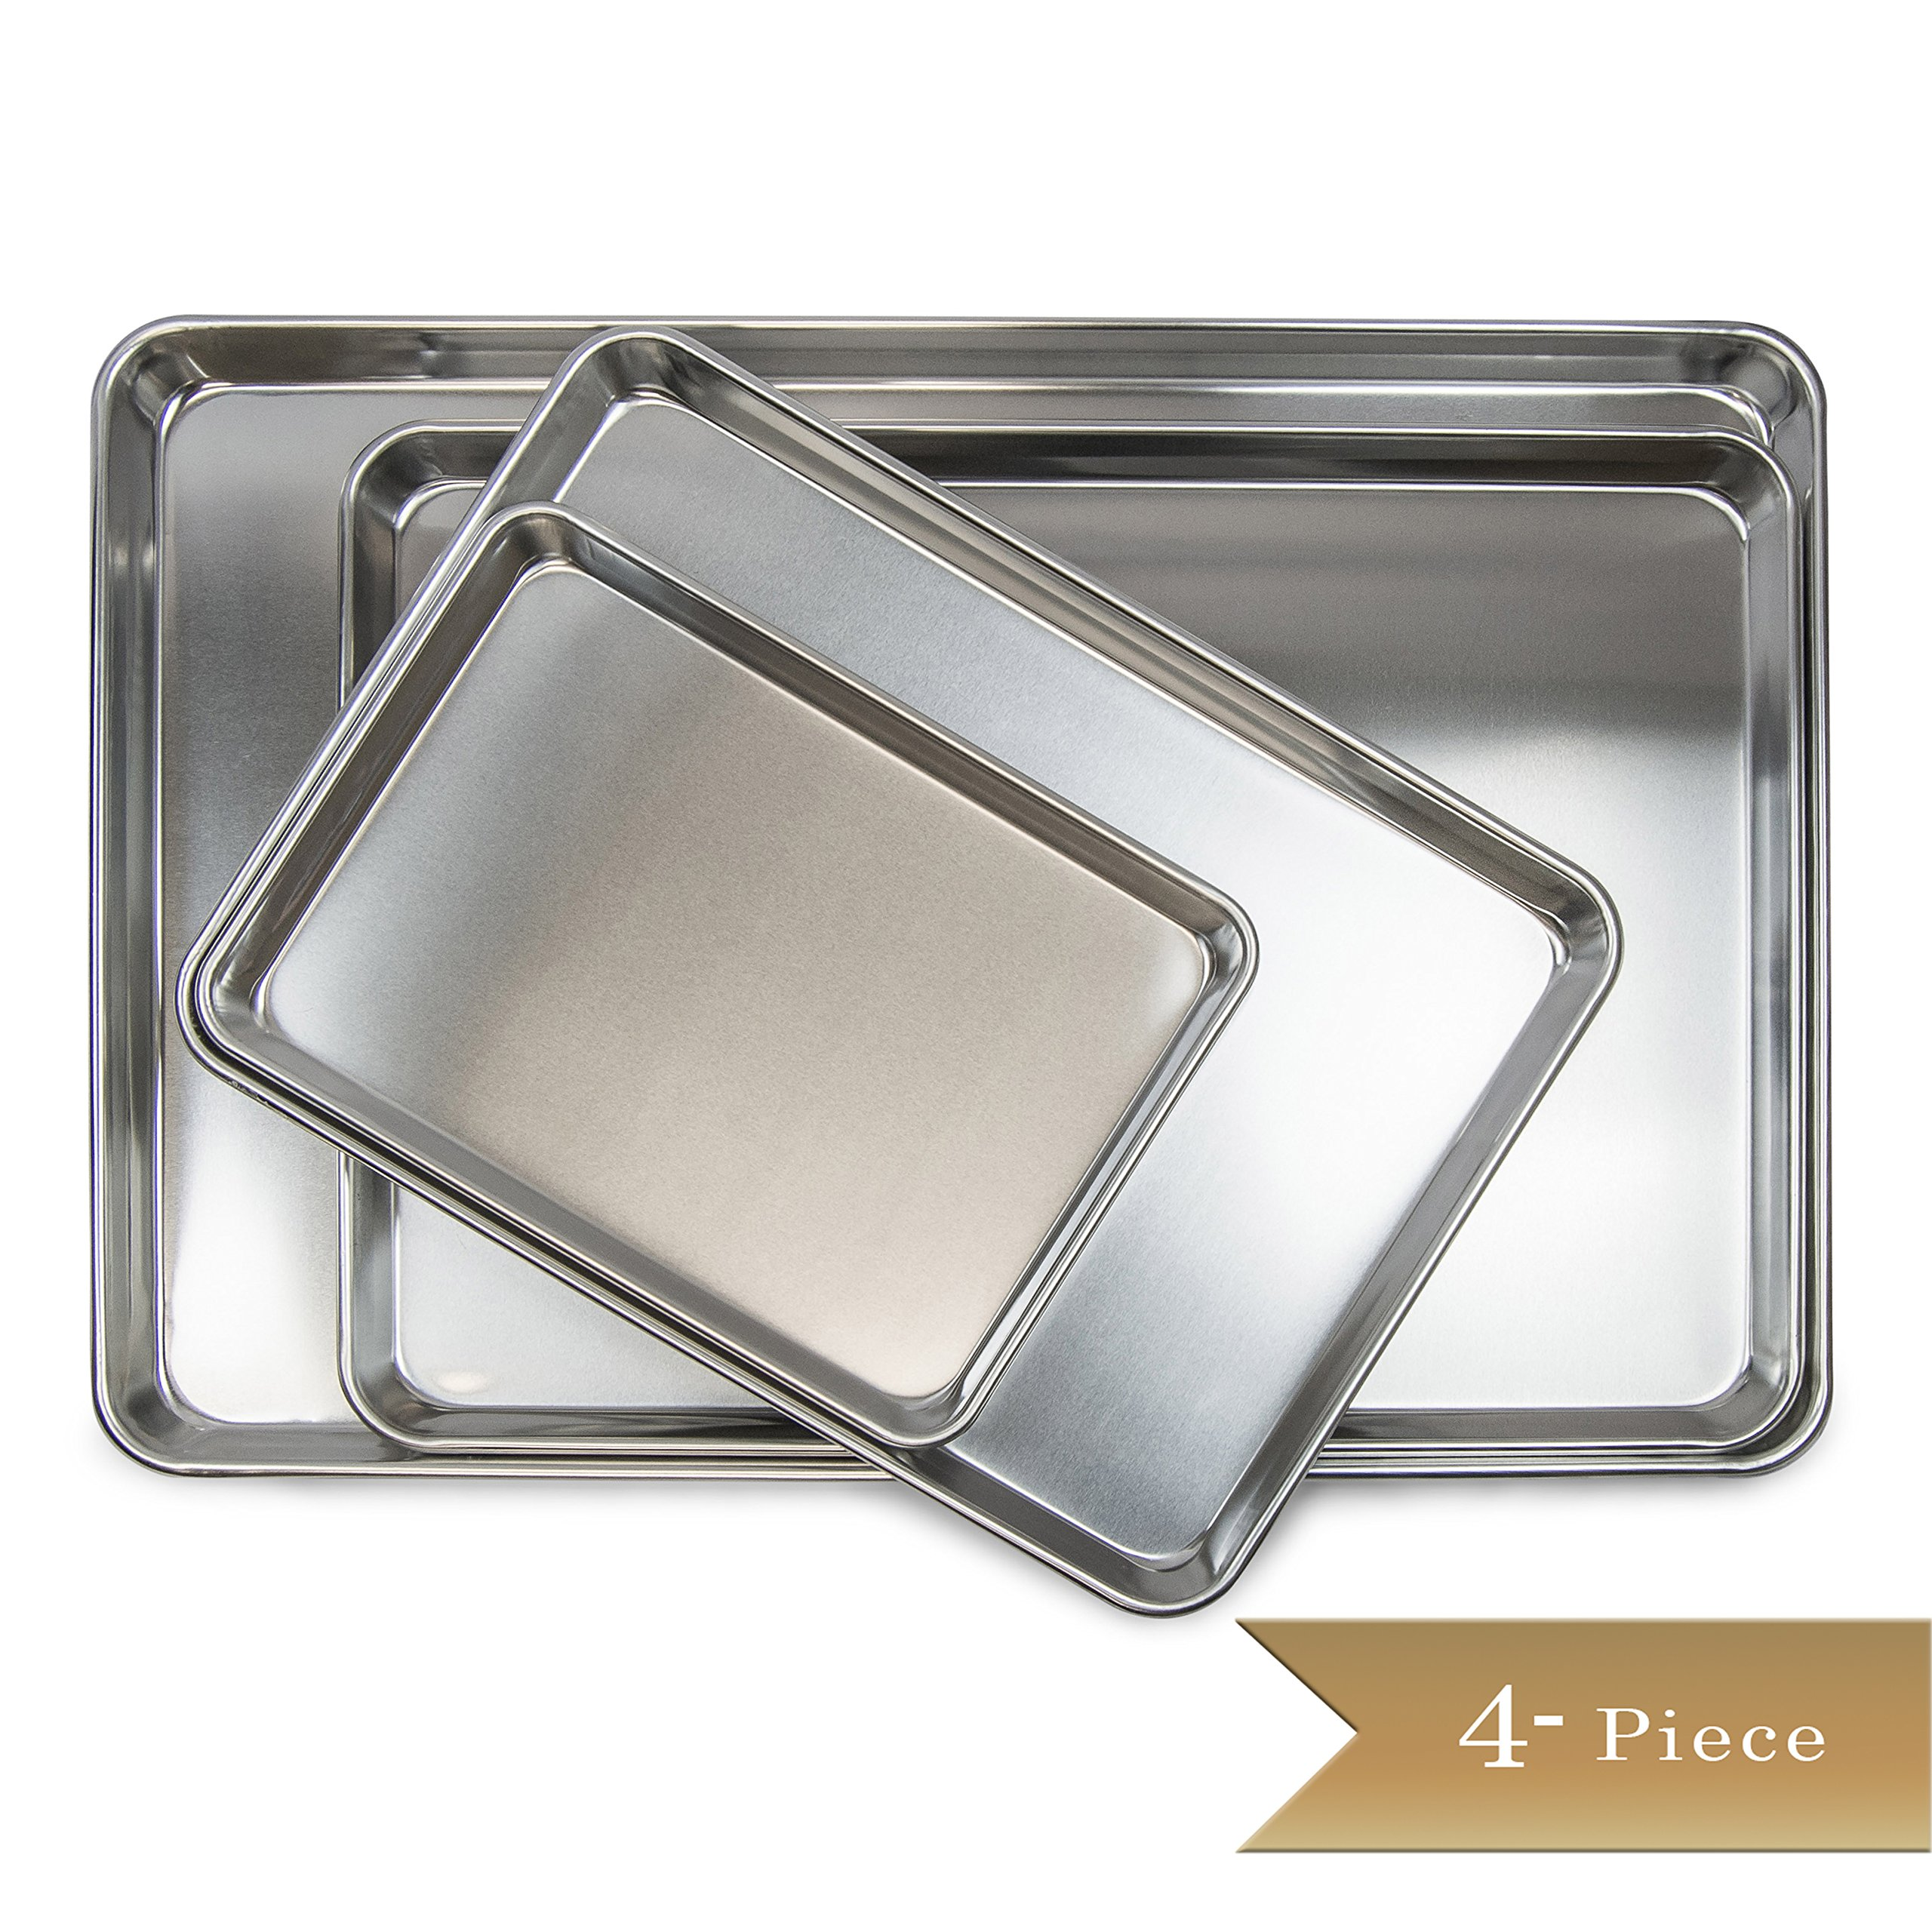 4 Piece - TrueCraftware - Aluminium Baking Tray Set - Baking Sheets in Full, 2/3rds Half, and Quarter Size